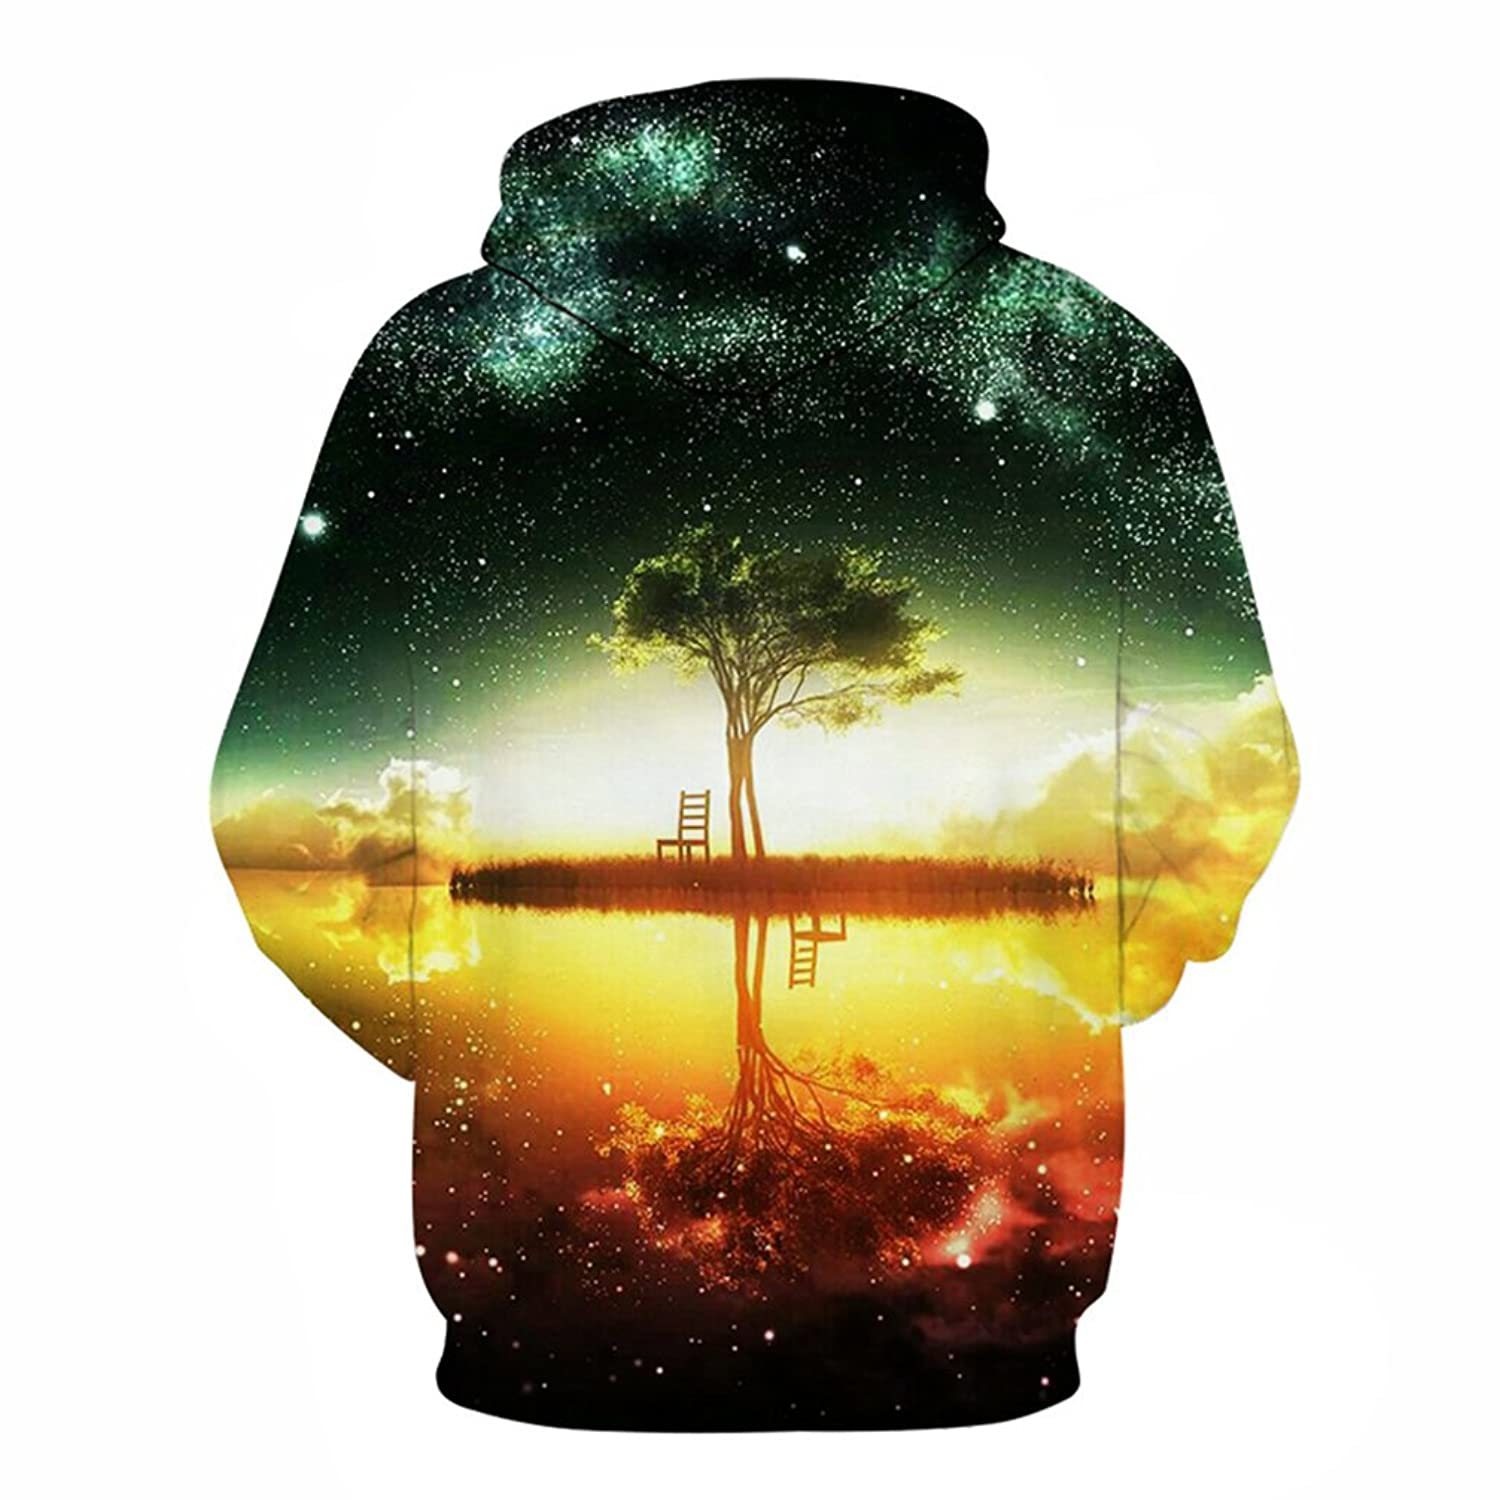 Space Galaxy Hoodies Sweatshirt New Tree Lake Chiar 3D Hooded Hoody Sudadera Hombre Casual Outwear Tracksuit Men Dropship Hoodies Men 6XL at Amazon Mens ...